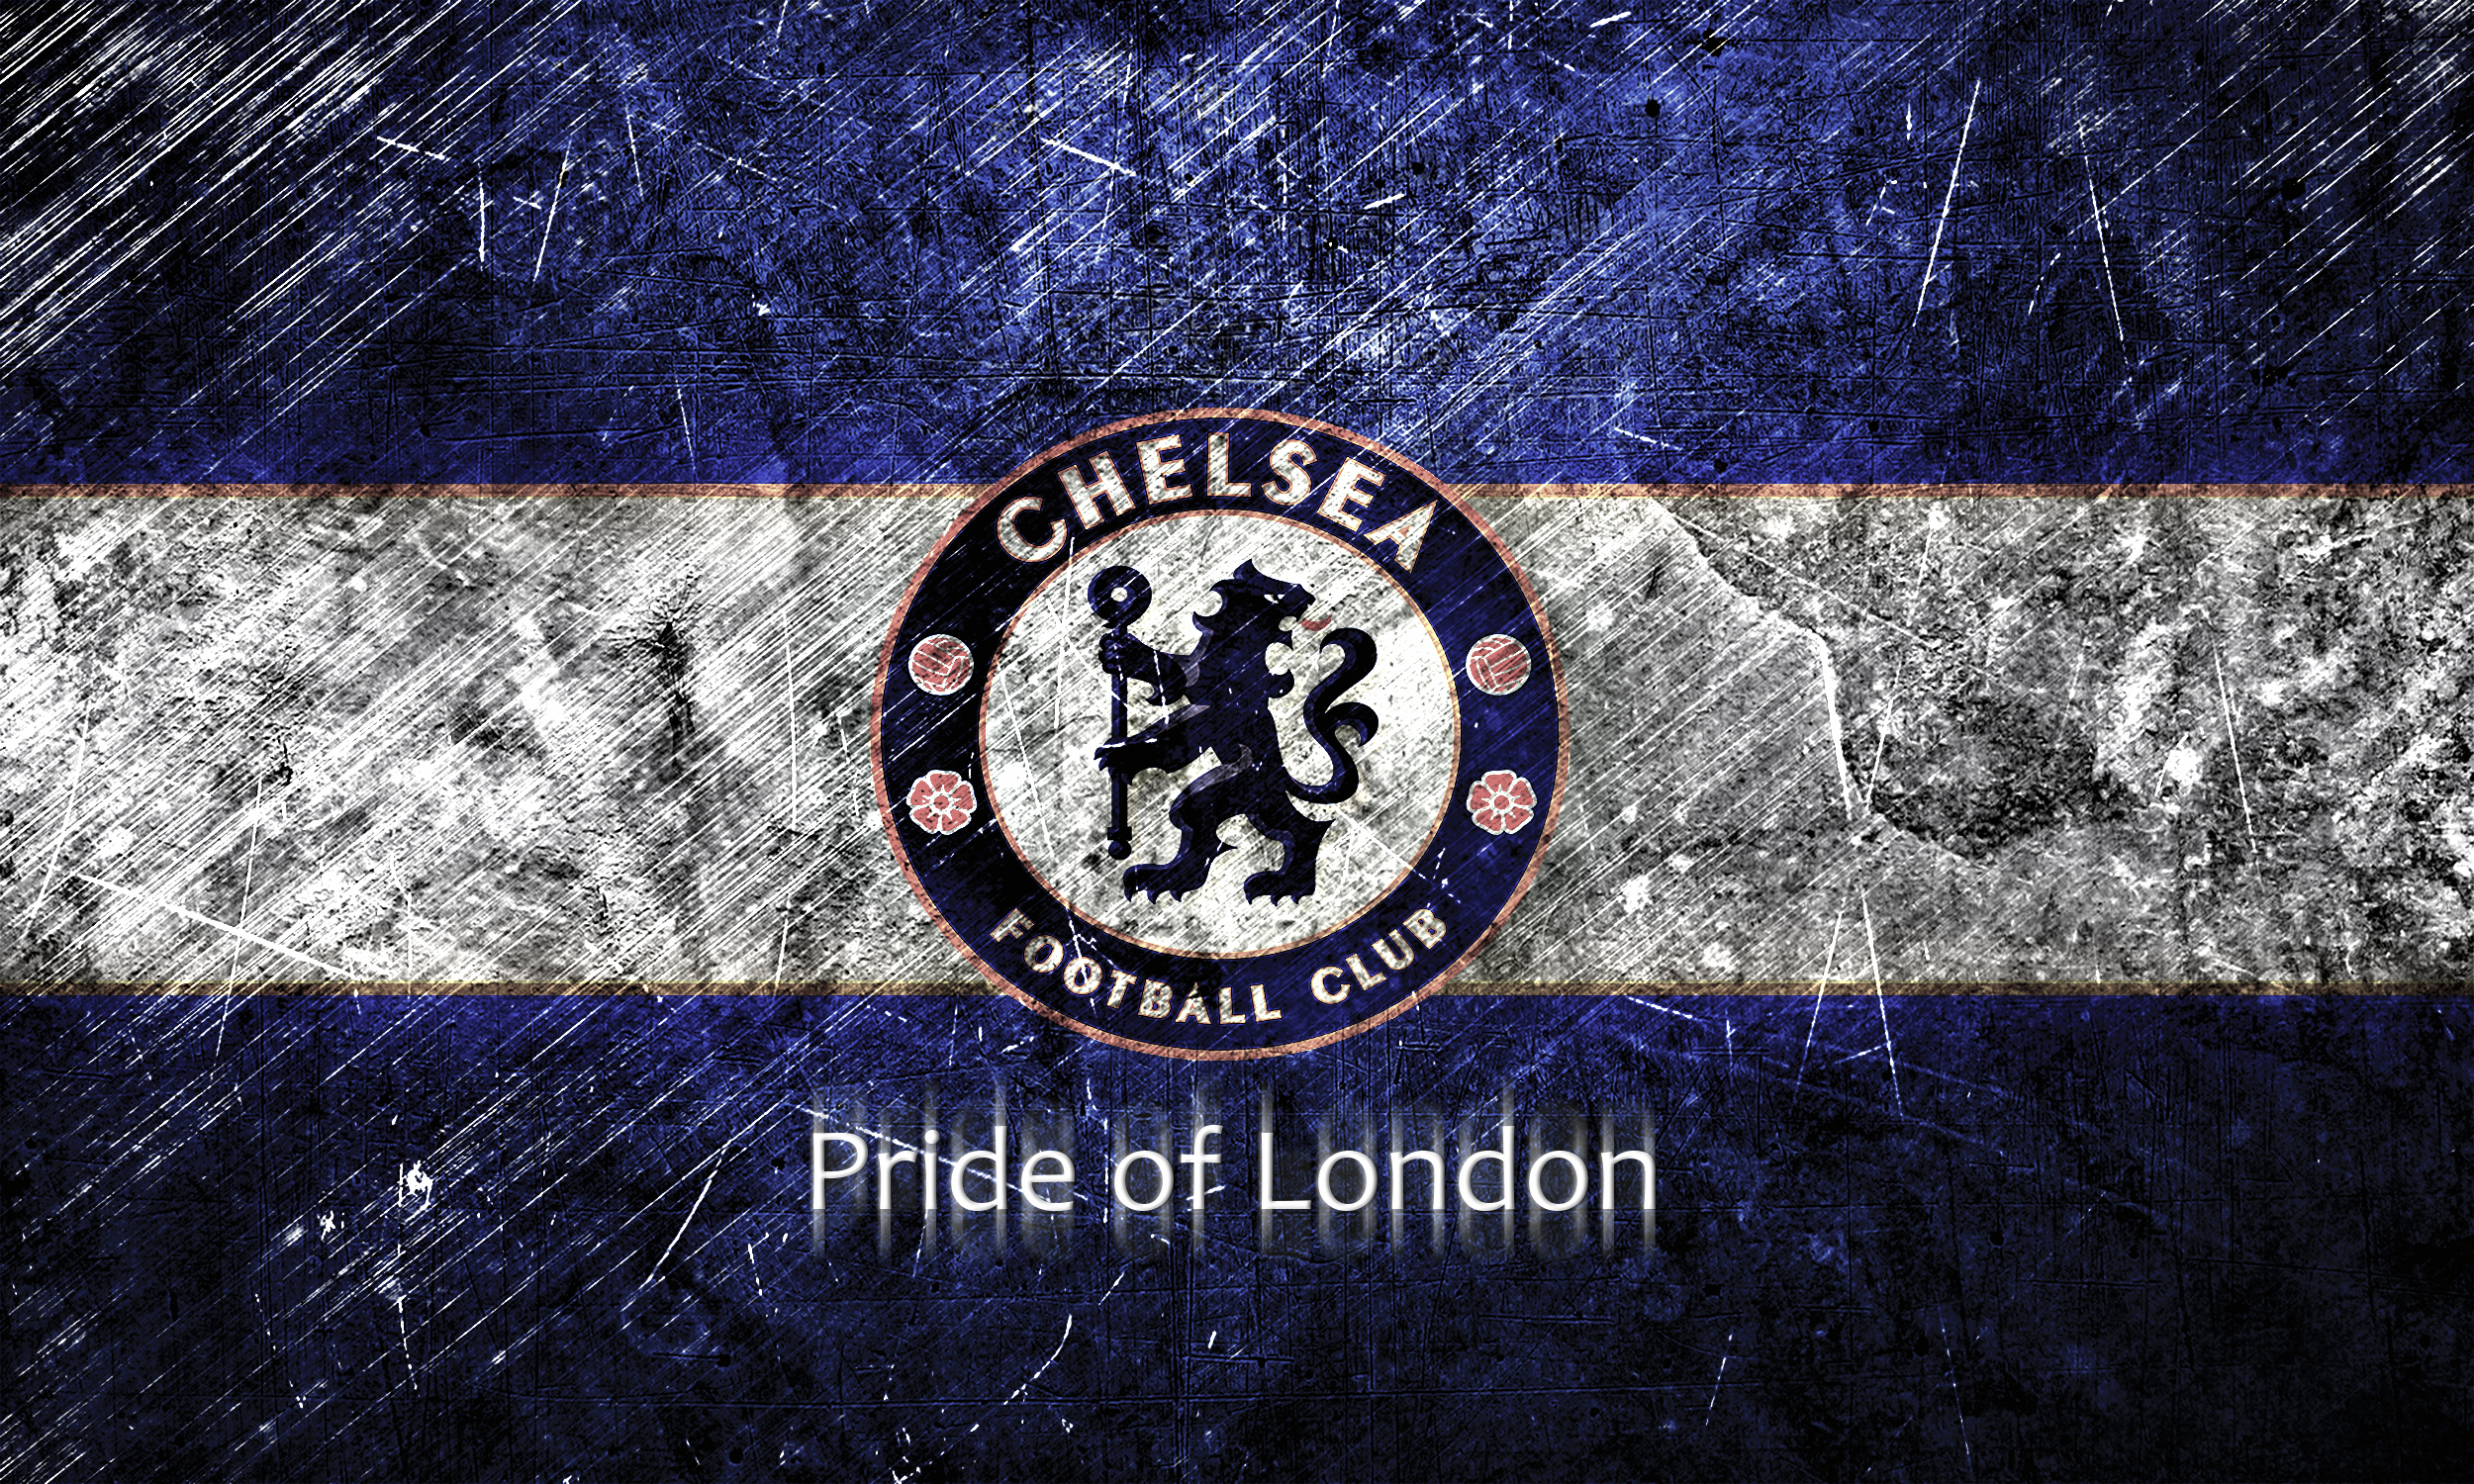 Chelsea Logo Football Club Wallpaper Backgroun 8641 Wallpaper High 2500x1500